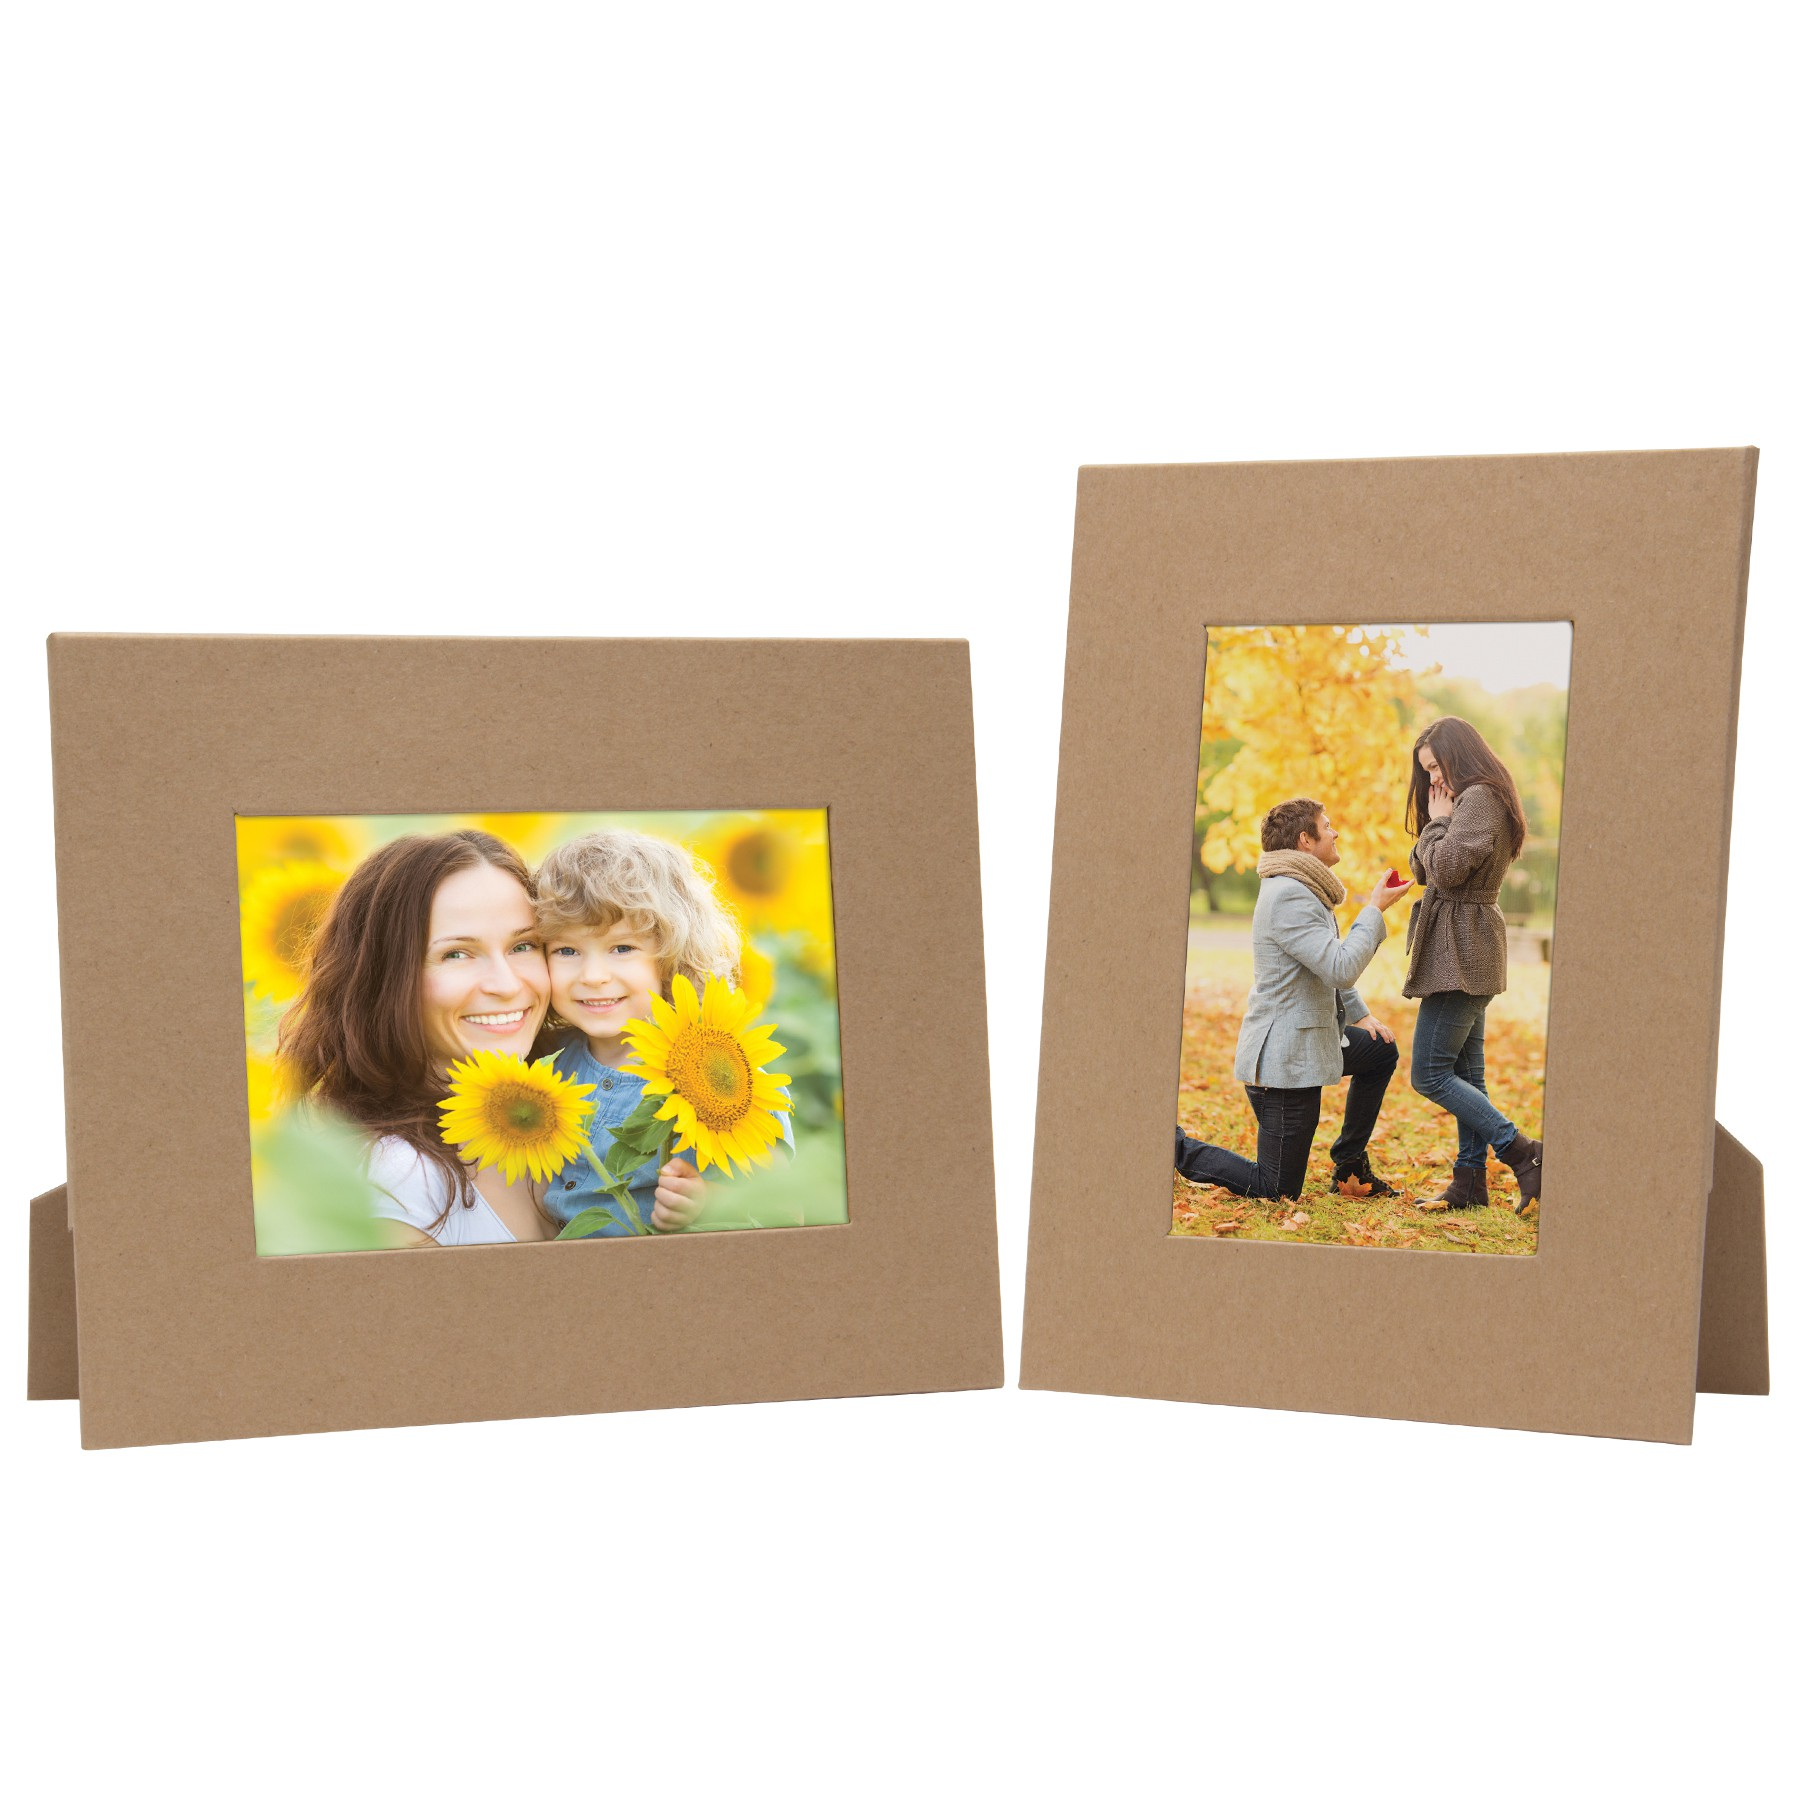 Wholesale Picture Frames - Paper Frames - PF3232 Recycled Paper ...